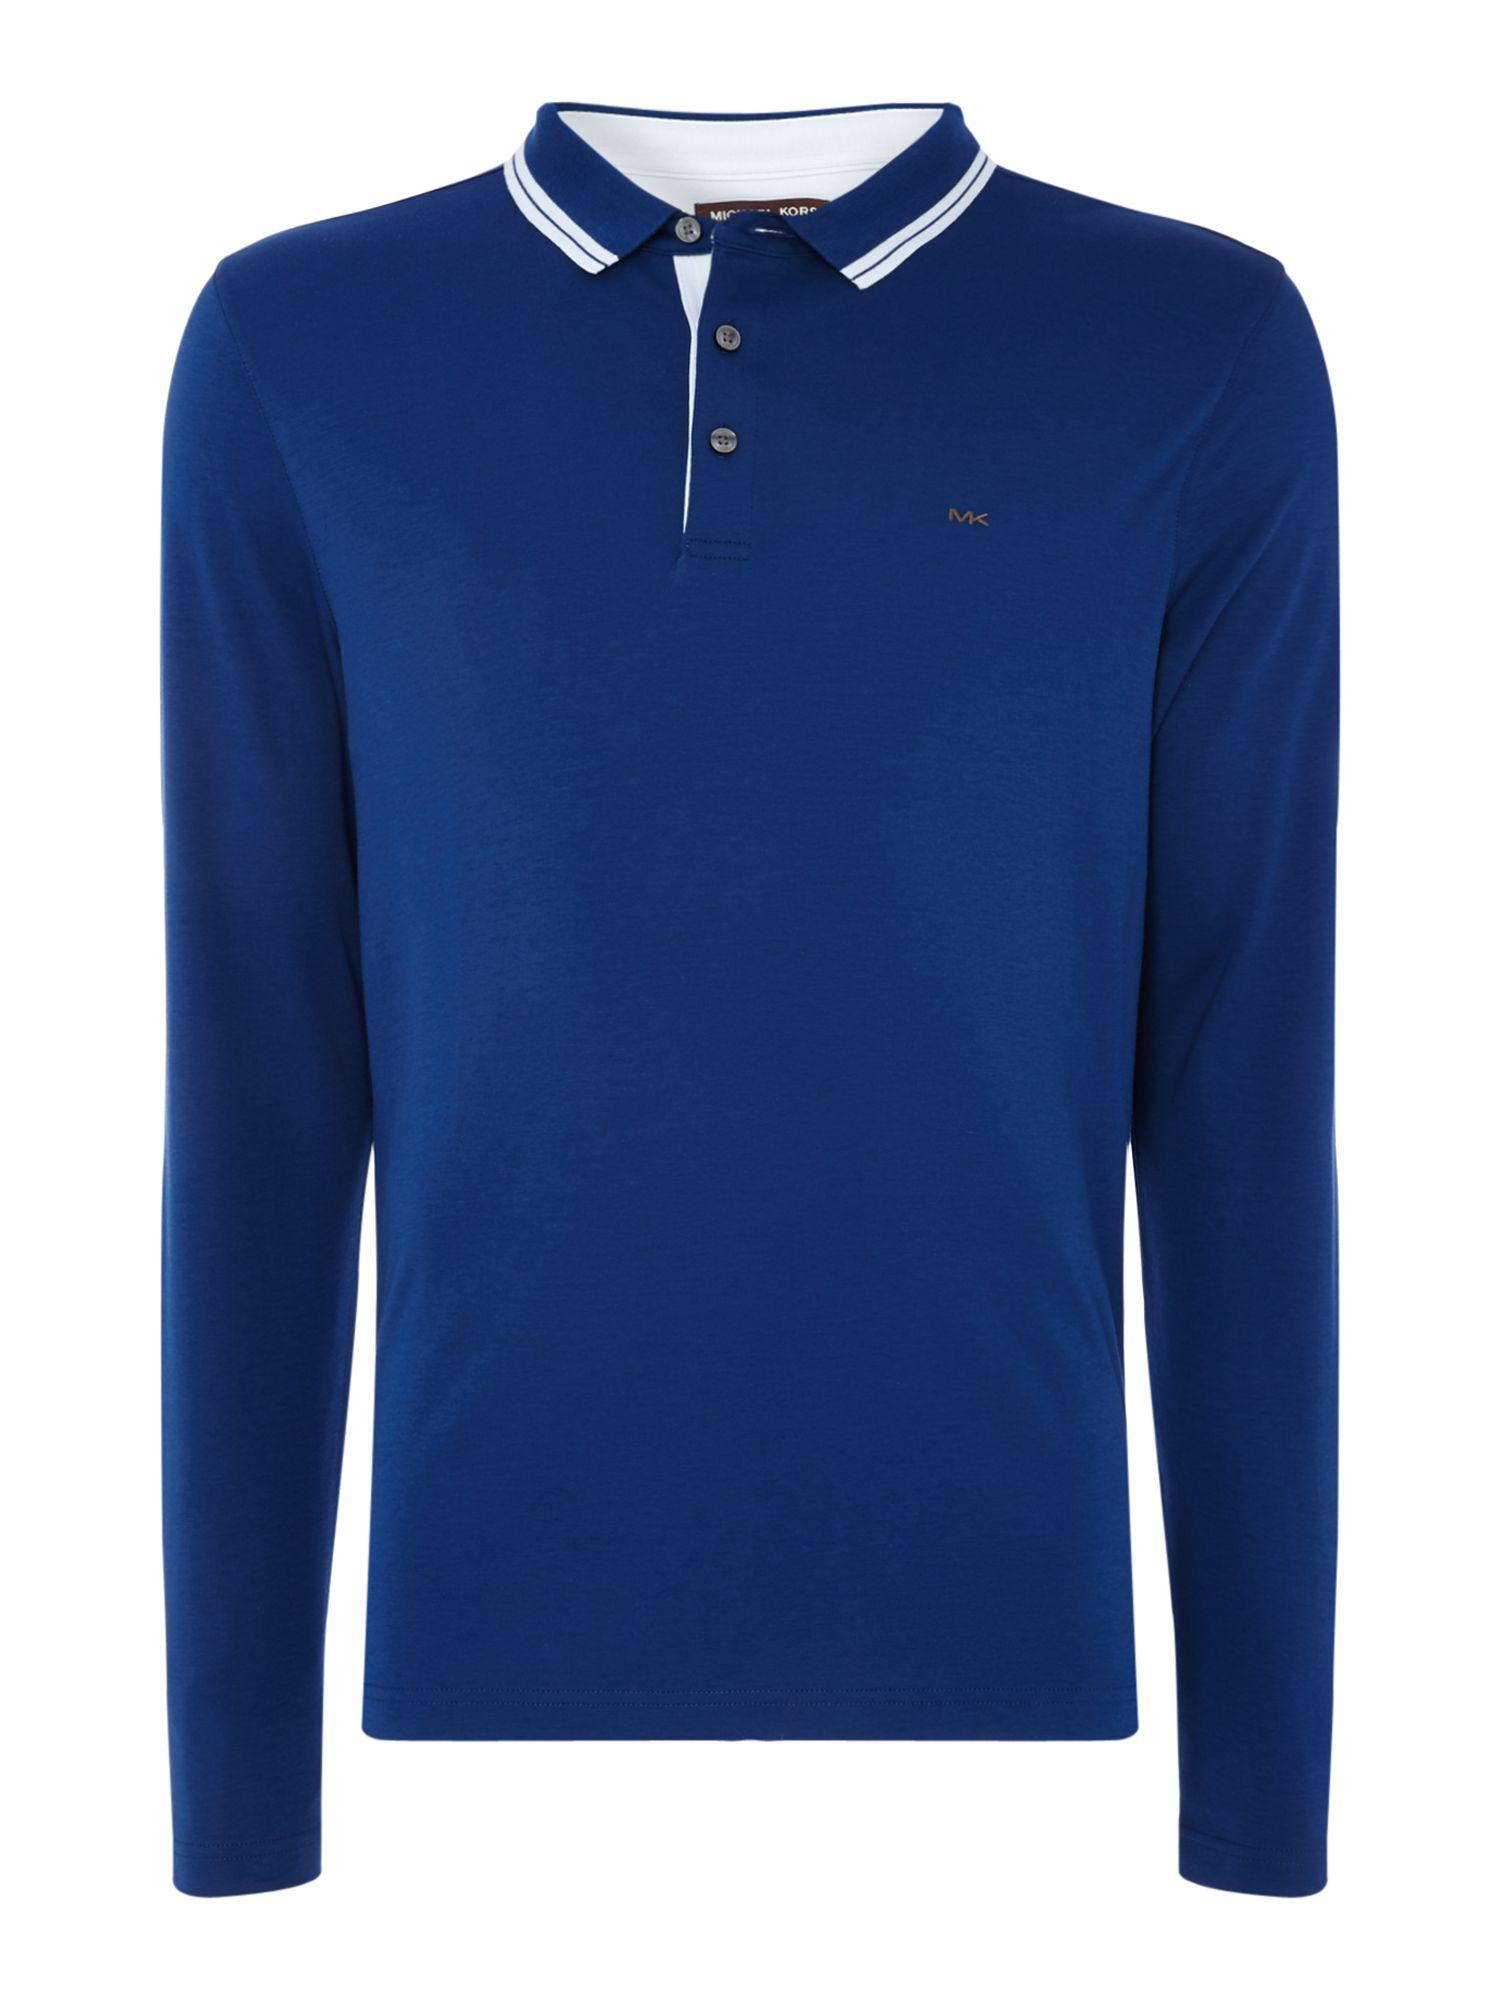 Michael kors men 39 s regular fit long sleeve greenwich polo for Michael kors mens shirts sale